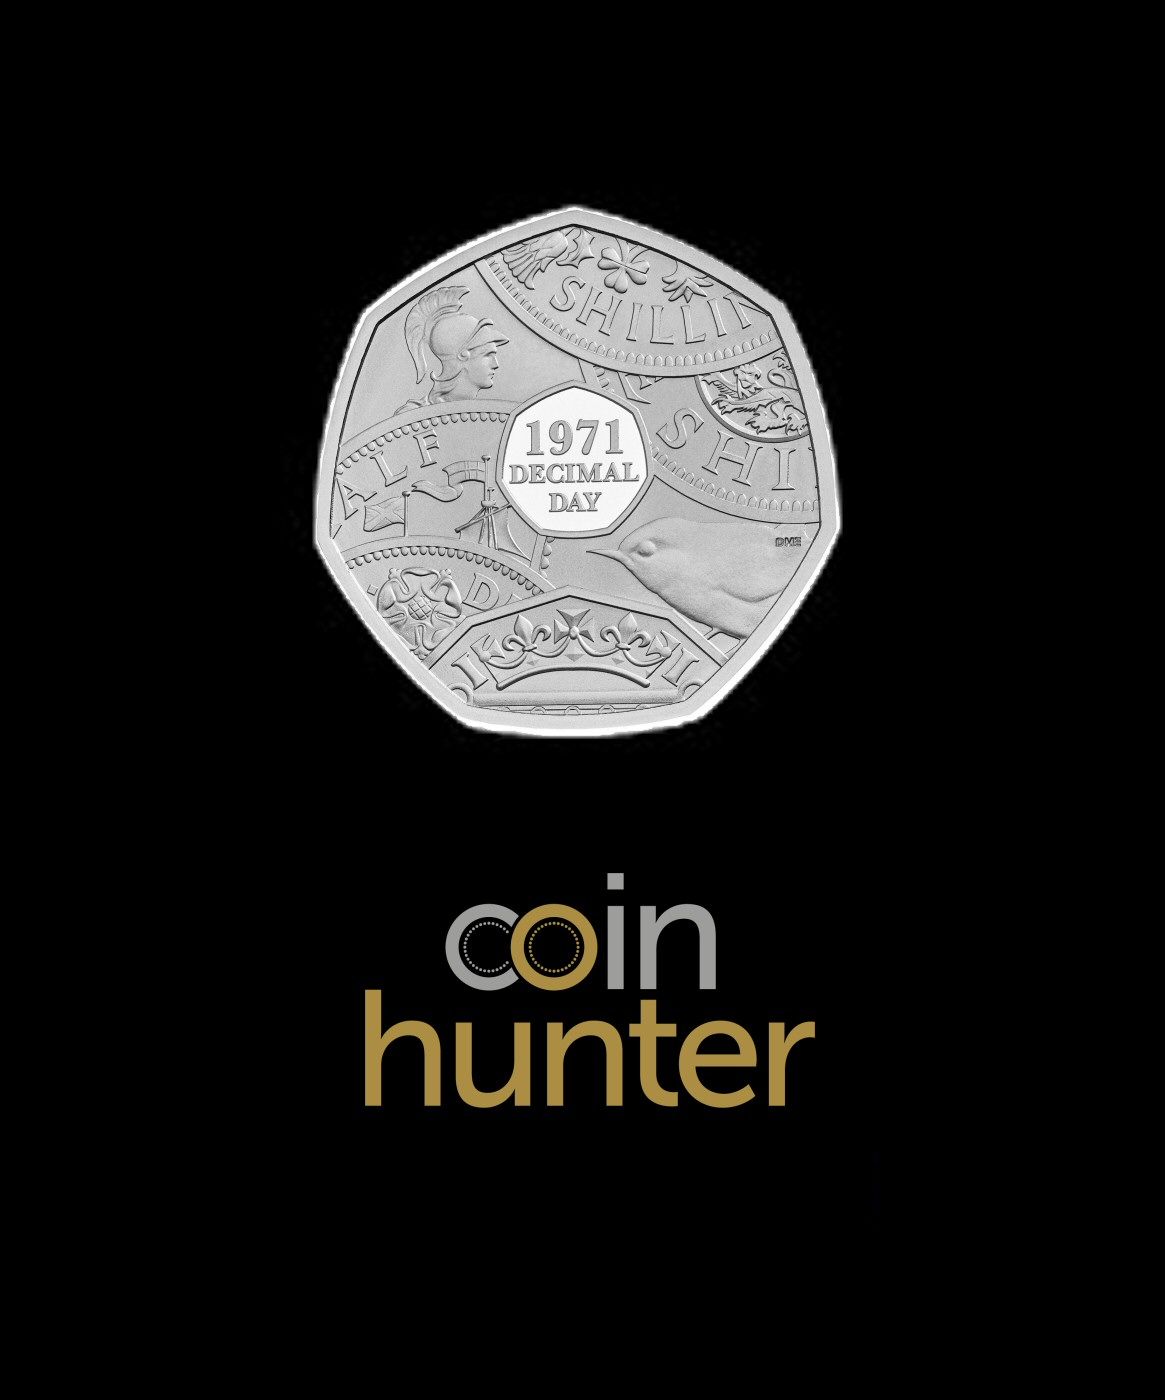 2021 50th Anniversary of Decimal Day 50p [Coin Hunter card]